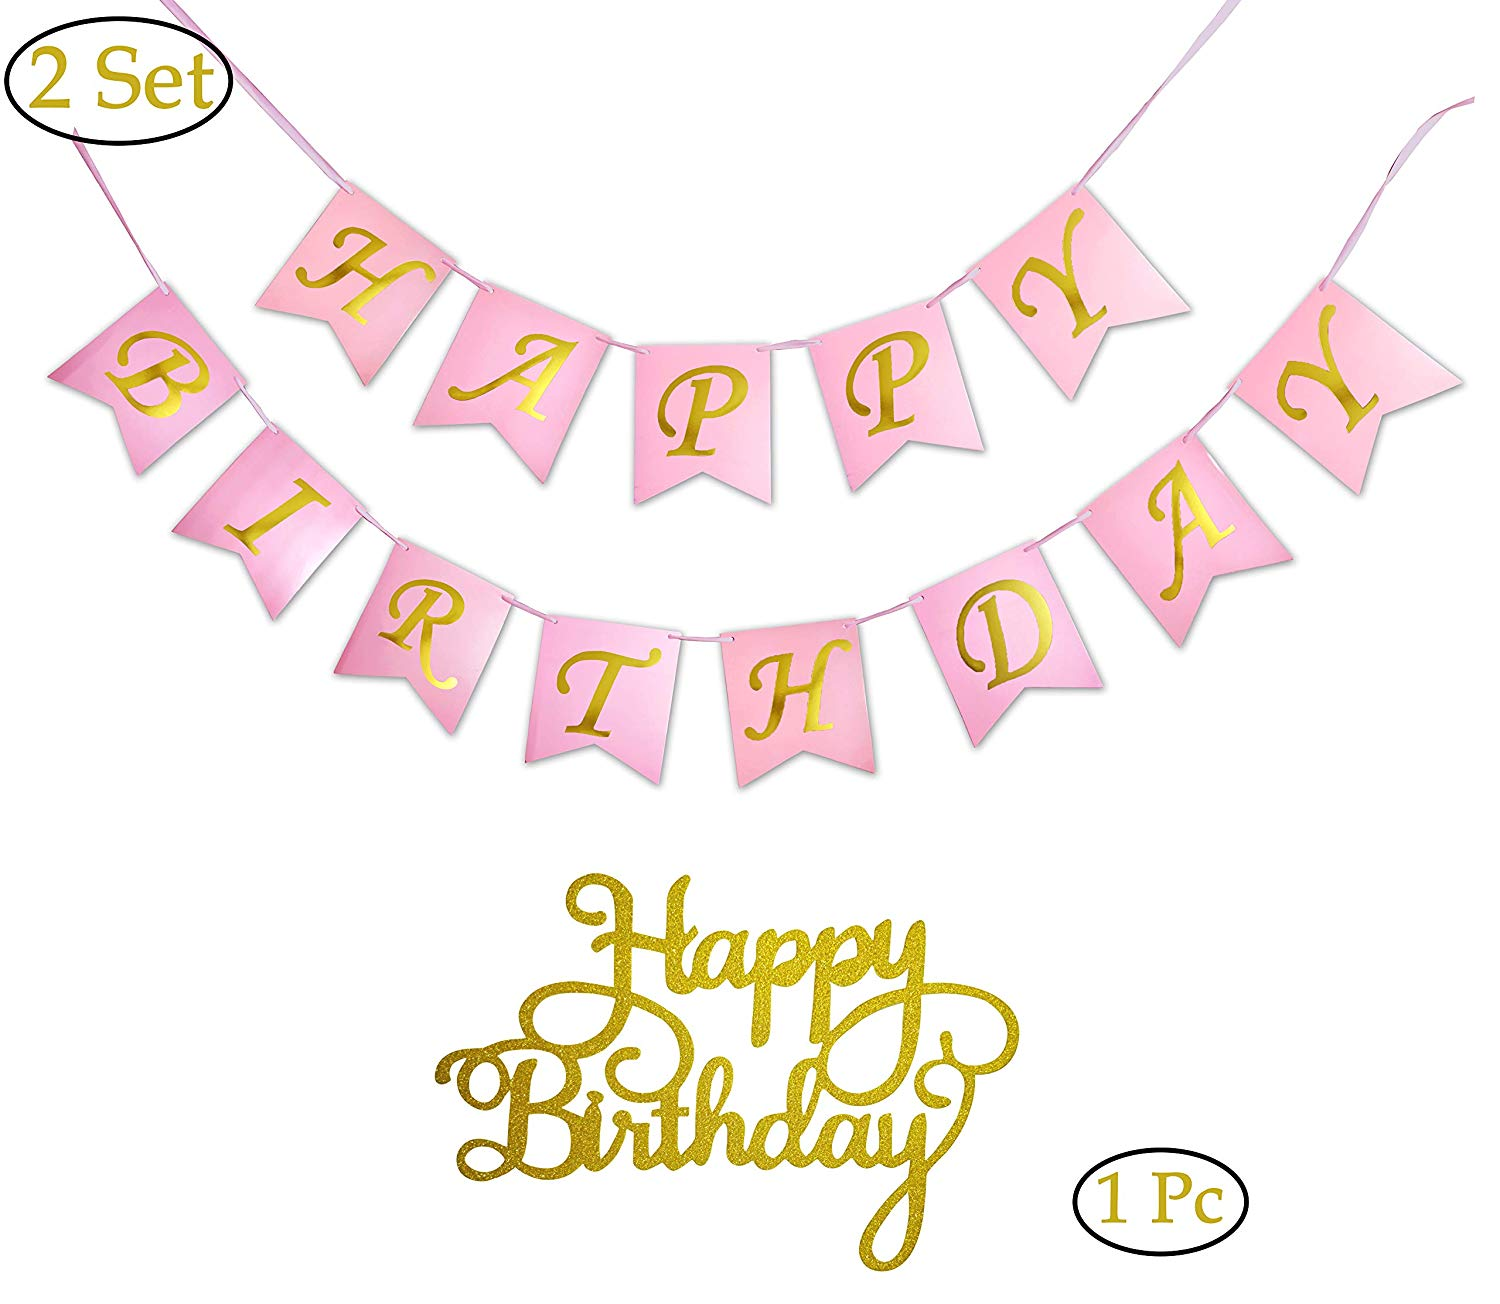 2 Sets of Happy Birthday Banners Bunting,1 Pc of Happy Birth Day Cake Topper (Gold Glitter), Party Decorations, Available in Pink,White,Black with Gold Foil Stamp Printing (Pink)